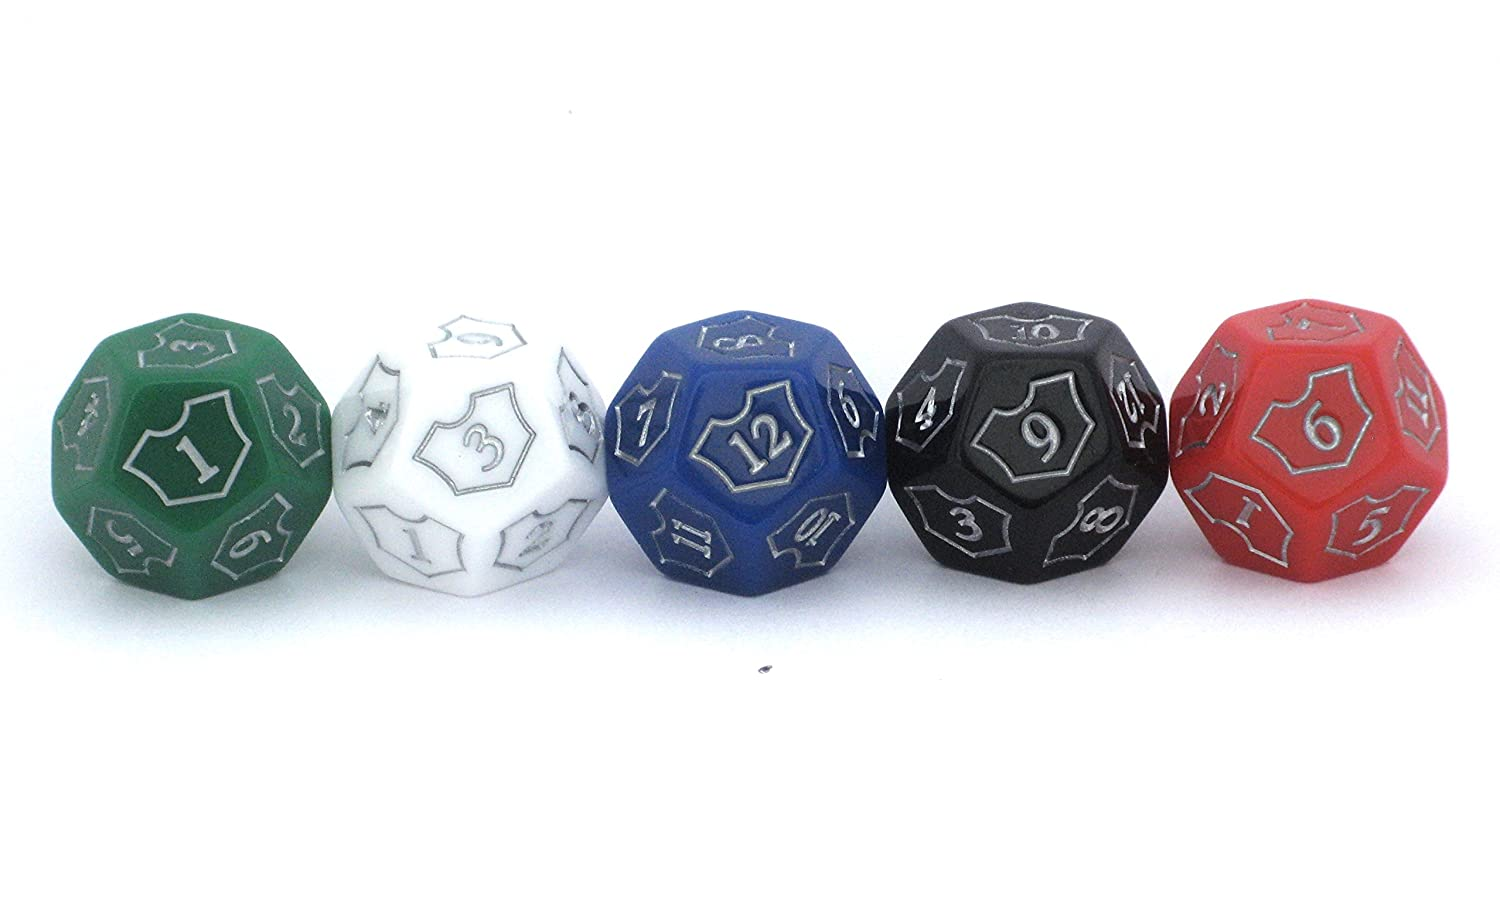 Red White Black Green Blue Magic MTG D12 Spin-Down Loyalty Counter Dice 5 Die Set by Hedral The Gathering TCG CCG Planeswalker Multi-Color